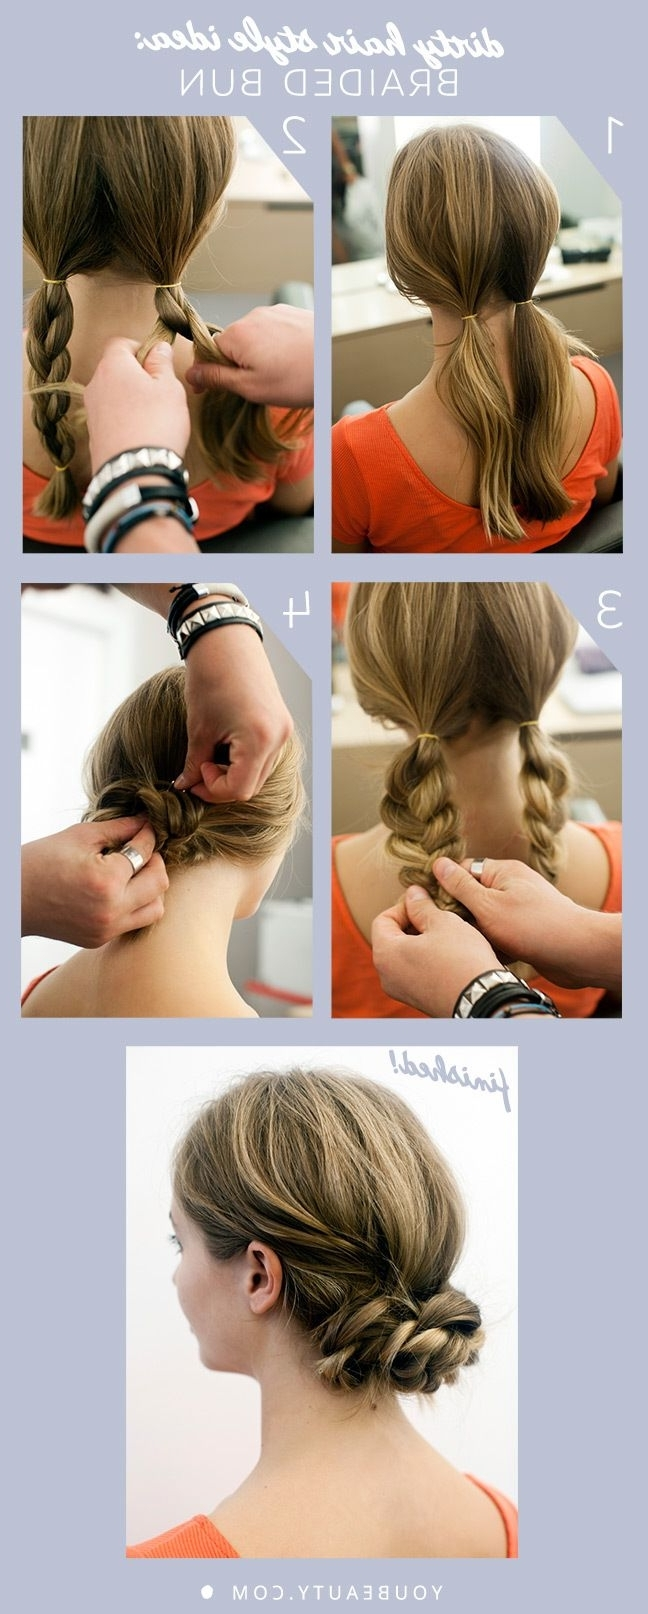 Dirty Hair Style Idea: Braided Bun (Gallery 12 of 15)